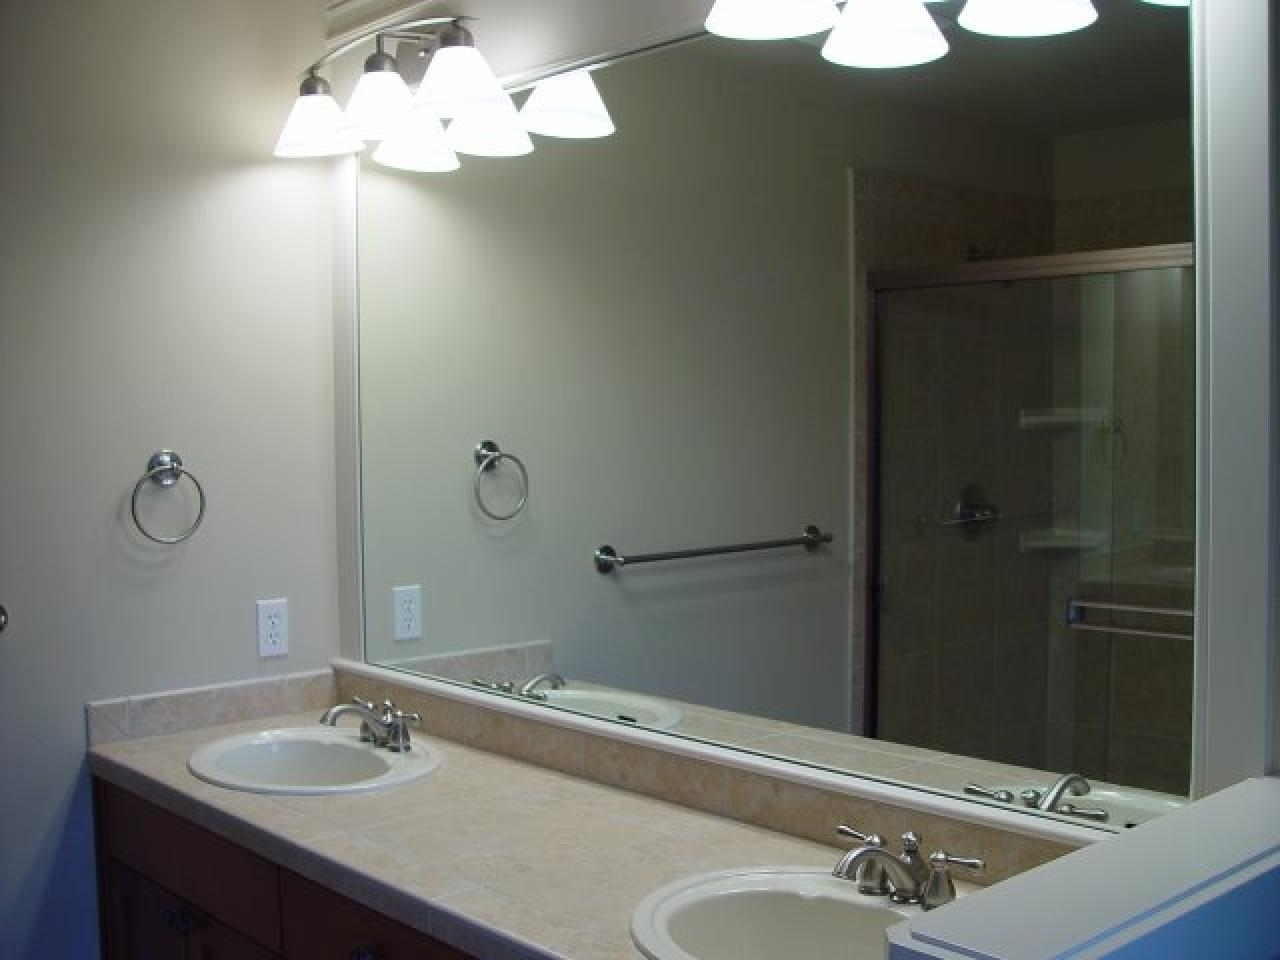 Bathrooms Design : Vanity Bathroom Sinks Menards Mirrors Medicine With Regard To Frameless Beveled Bathroom Mirrors (Image 8 of 20)